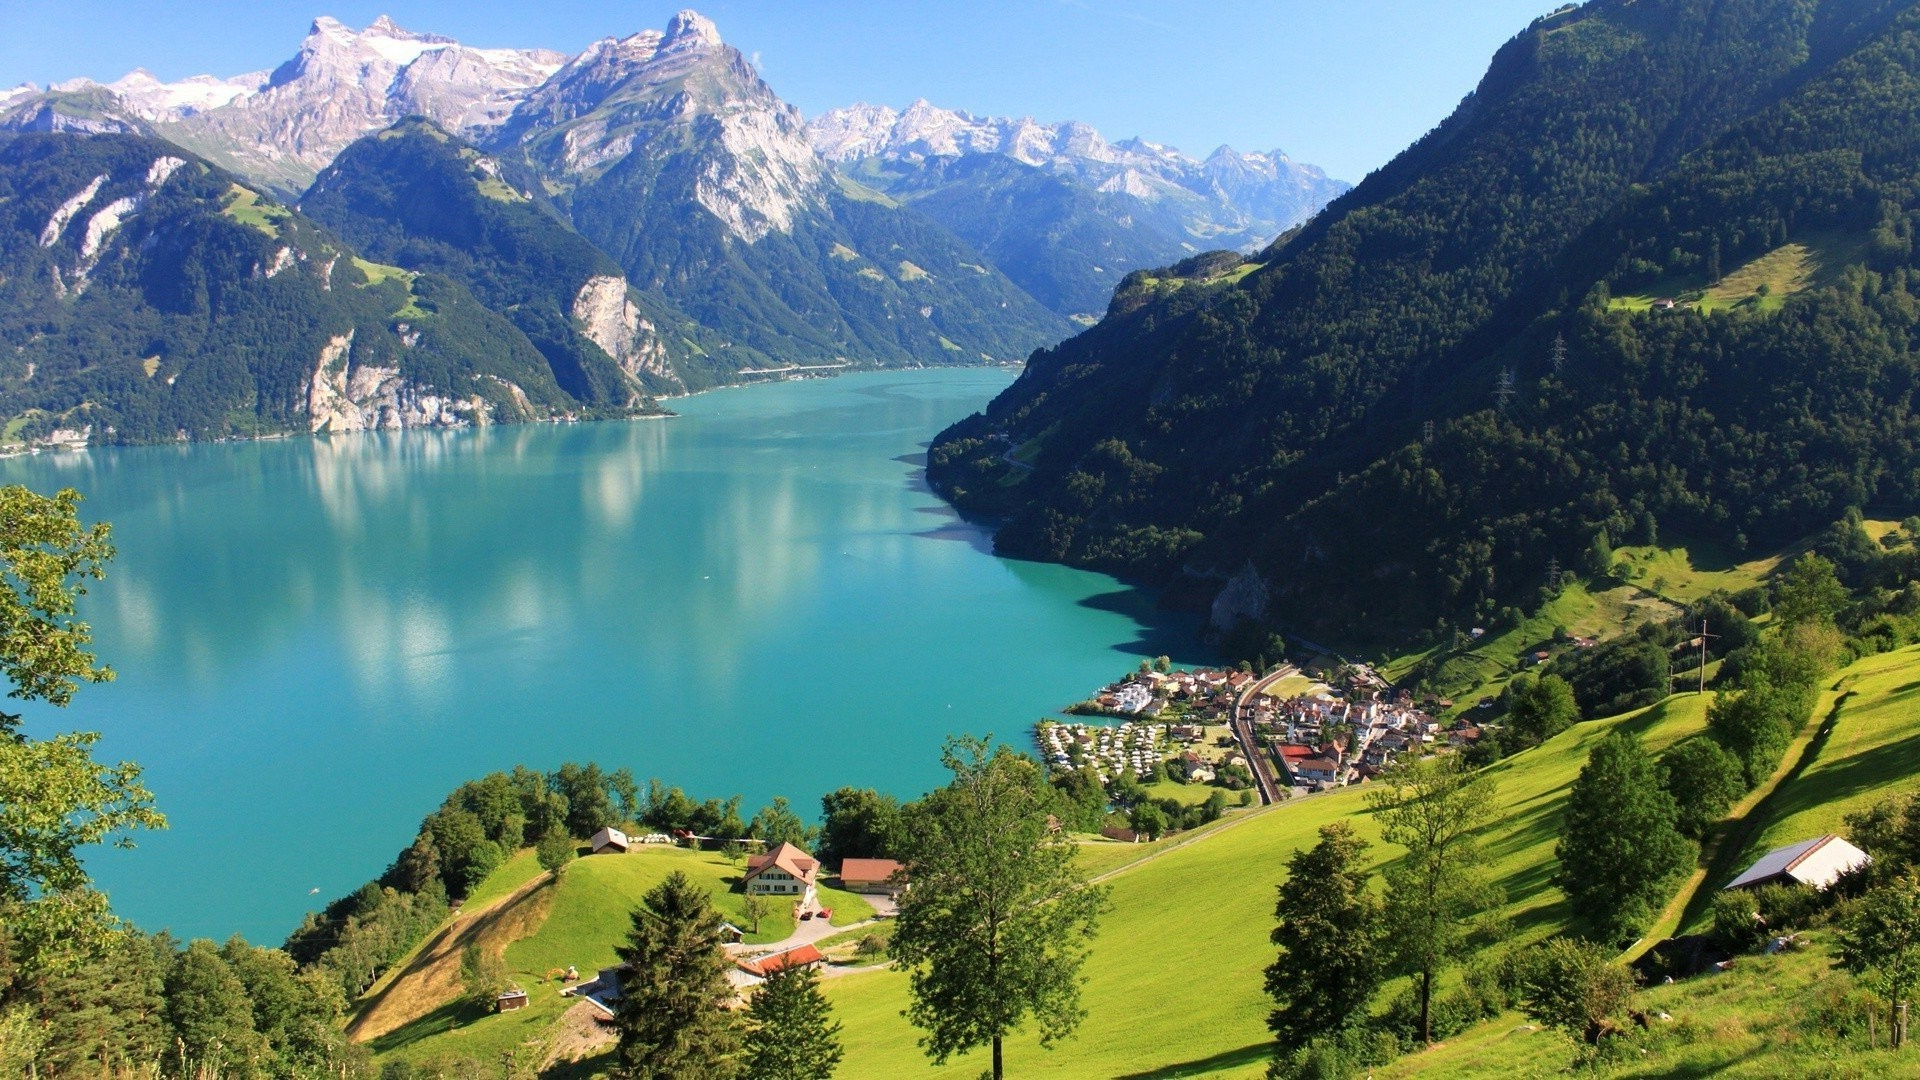 Lake Lucerne,Top things to do in Lucerne during your Switzerland holidays!